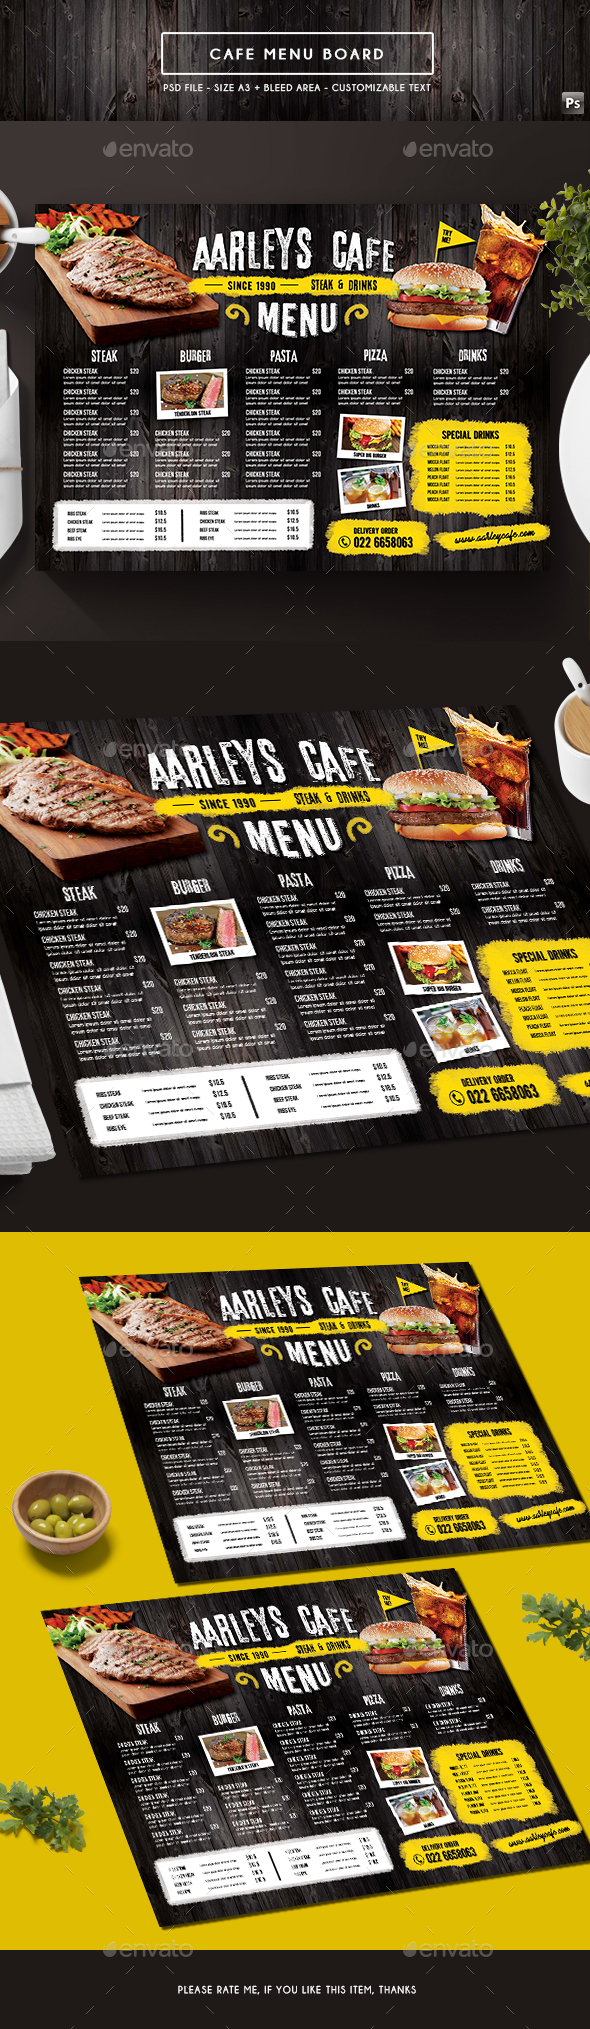 Cafe Menu Board - Food Menus Print Templates